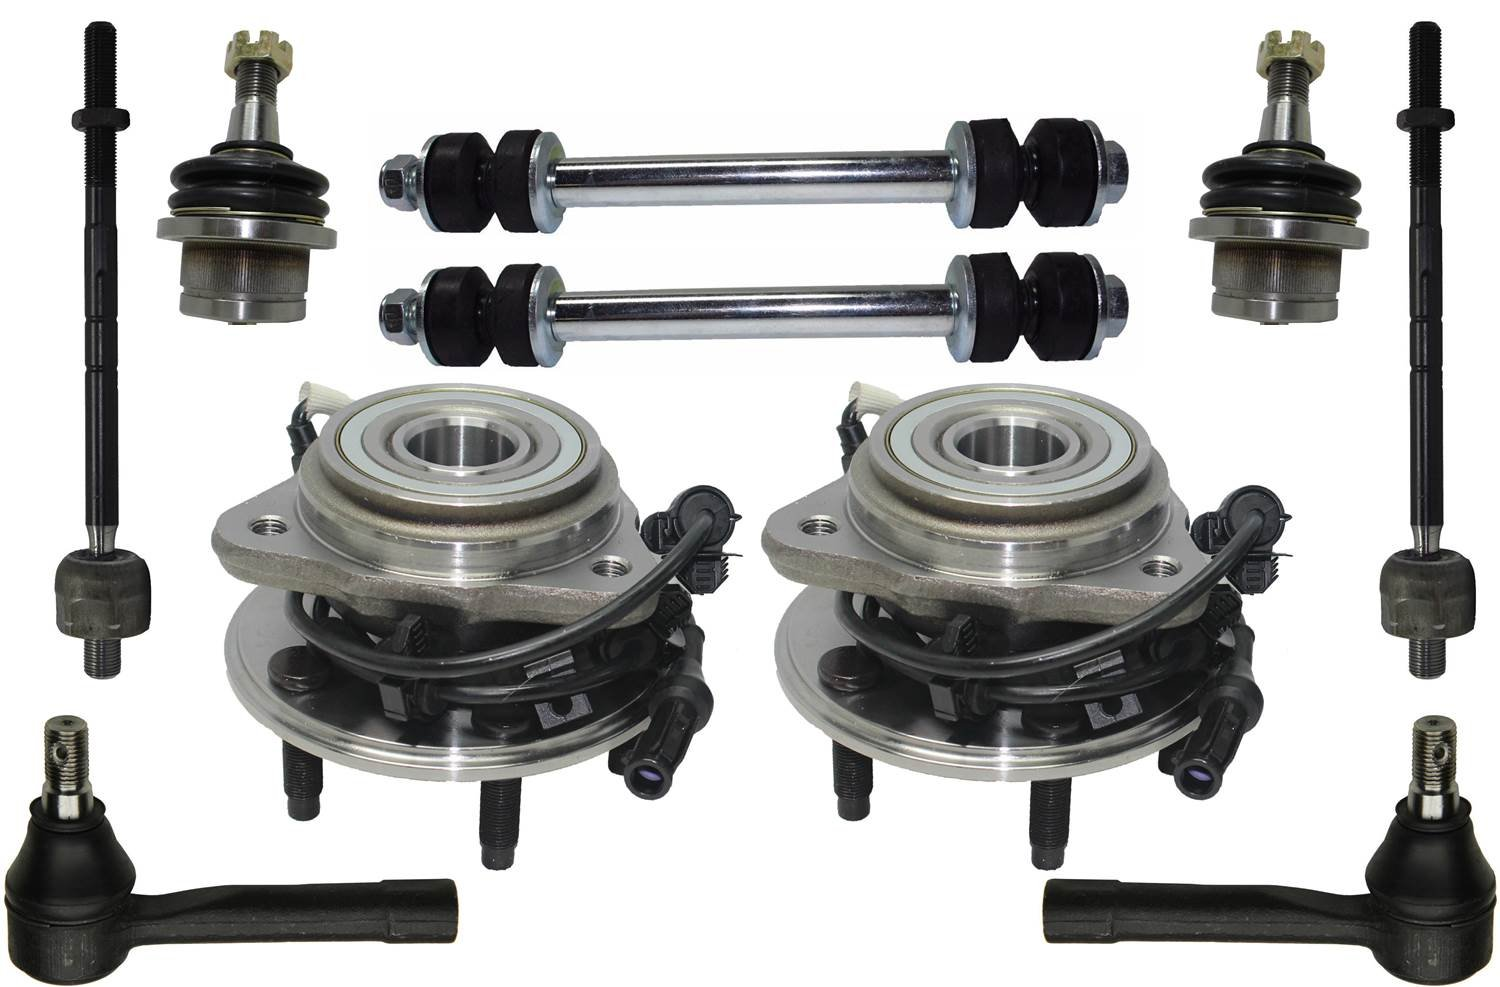 PartsW 10 Pcs Kit Front Wheel Bearing and Hub Assembly Inner Outer Tie Rod Ends Lower Ball Joints Sway Bar End Link by Parts Warehouse (Image #1)